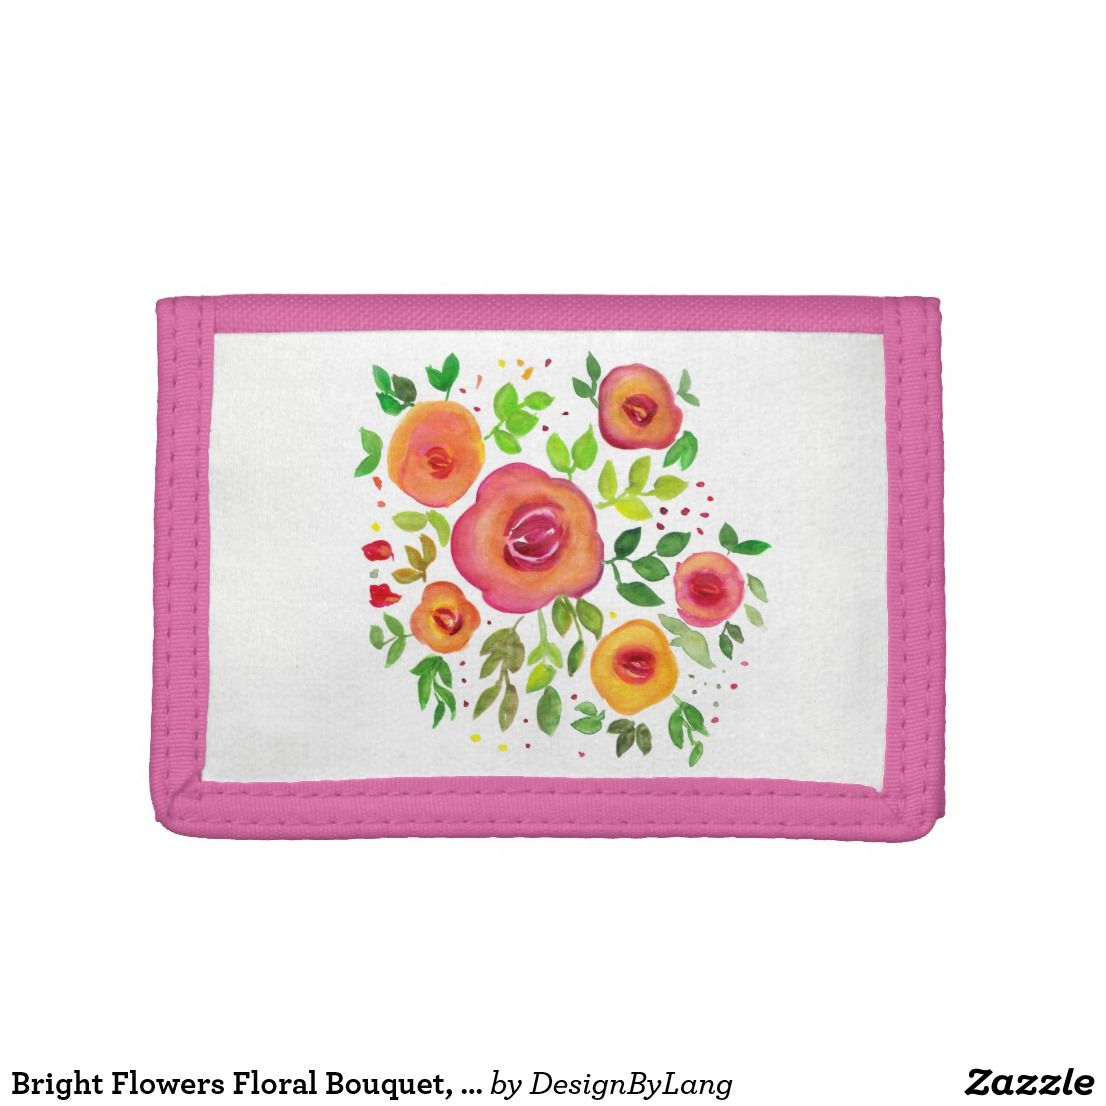 Bright Flowers Floral Bouquet Watercolor Painting Tri Fold Wallet